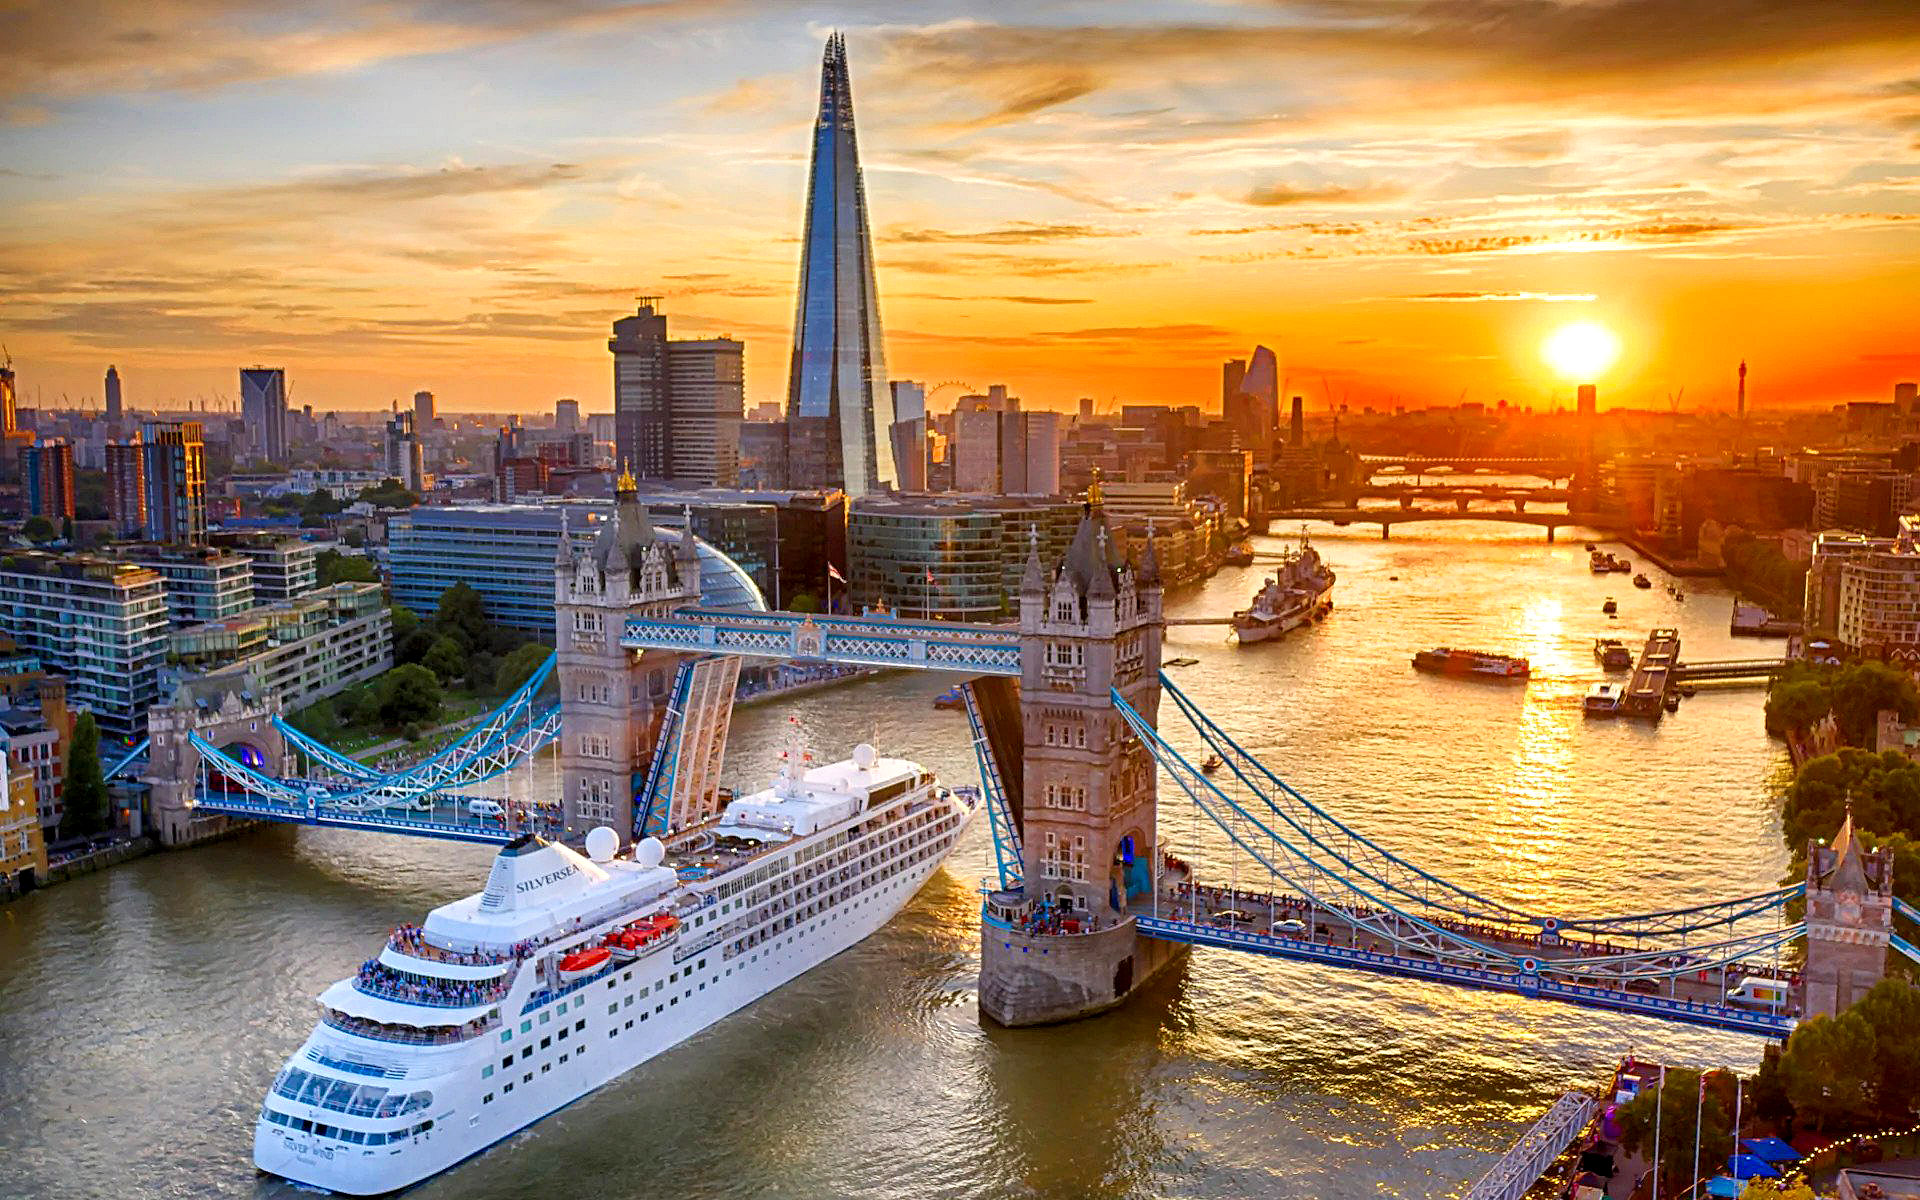 The Silver Wind cruise ship passes under Tower Bridge, London by Chris Gorman.jpg